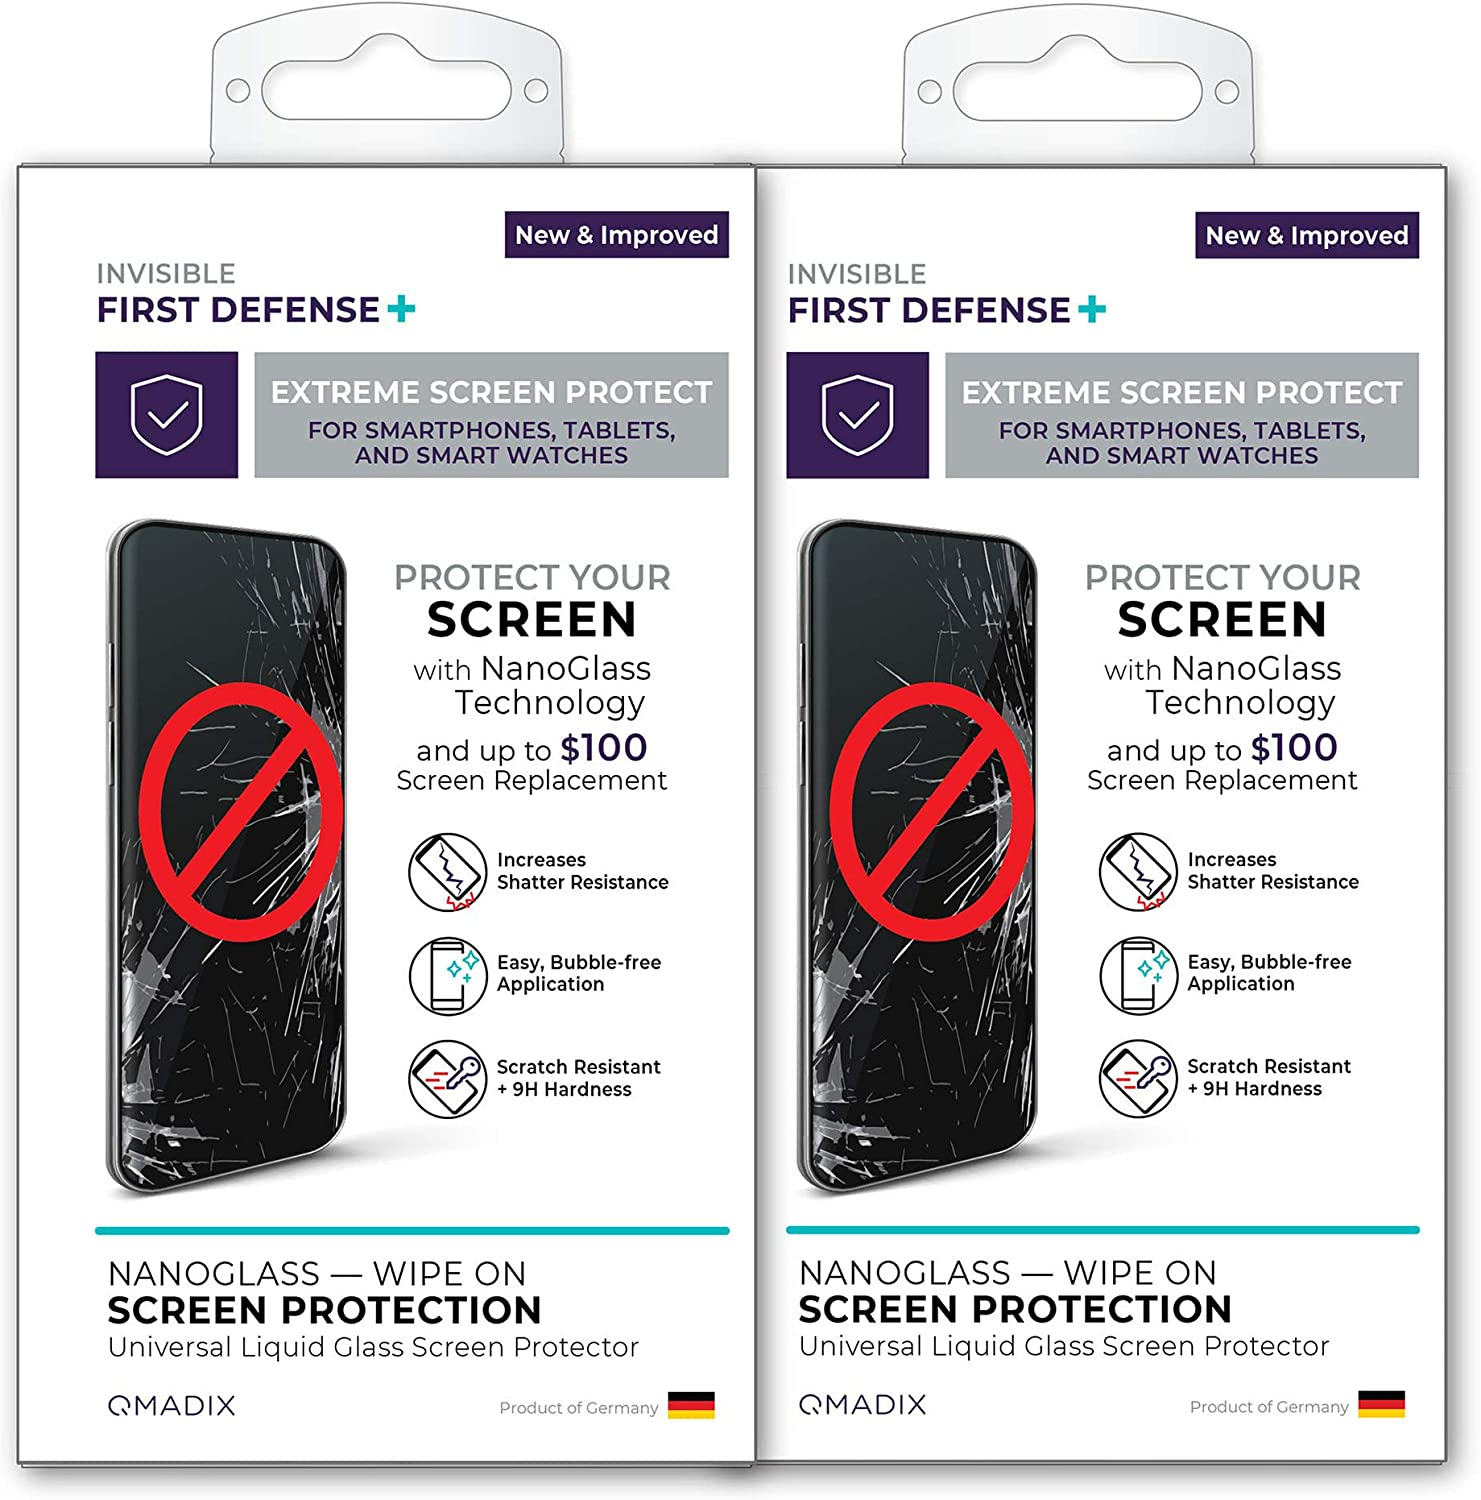 QMADIX 2-Pack $100 - Invisible First Defense NANO Liquid Glass Screen Protector for All Phones Tablets Smart Watches Apple Samsung iPhone iPad Galaxy and Universal